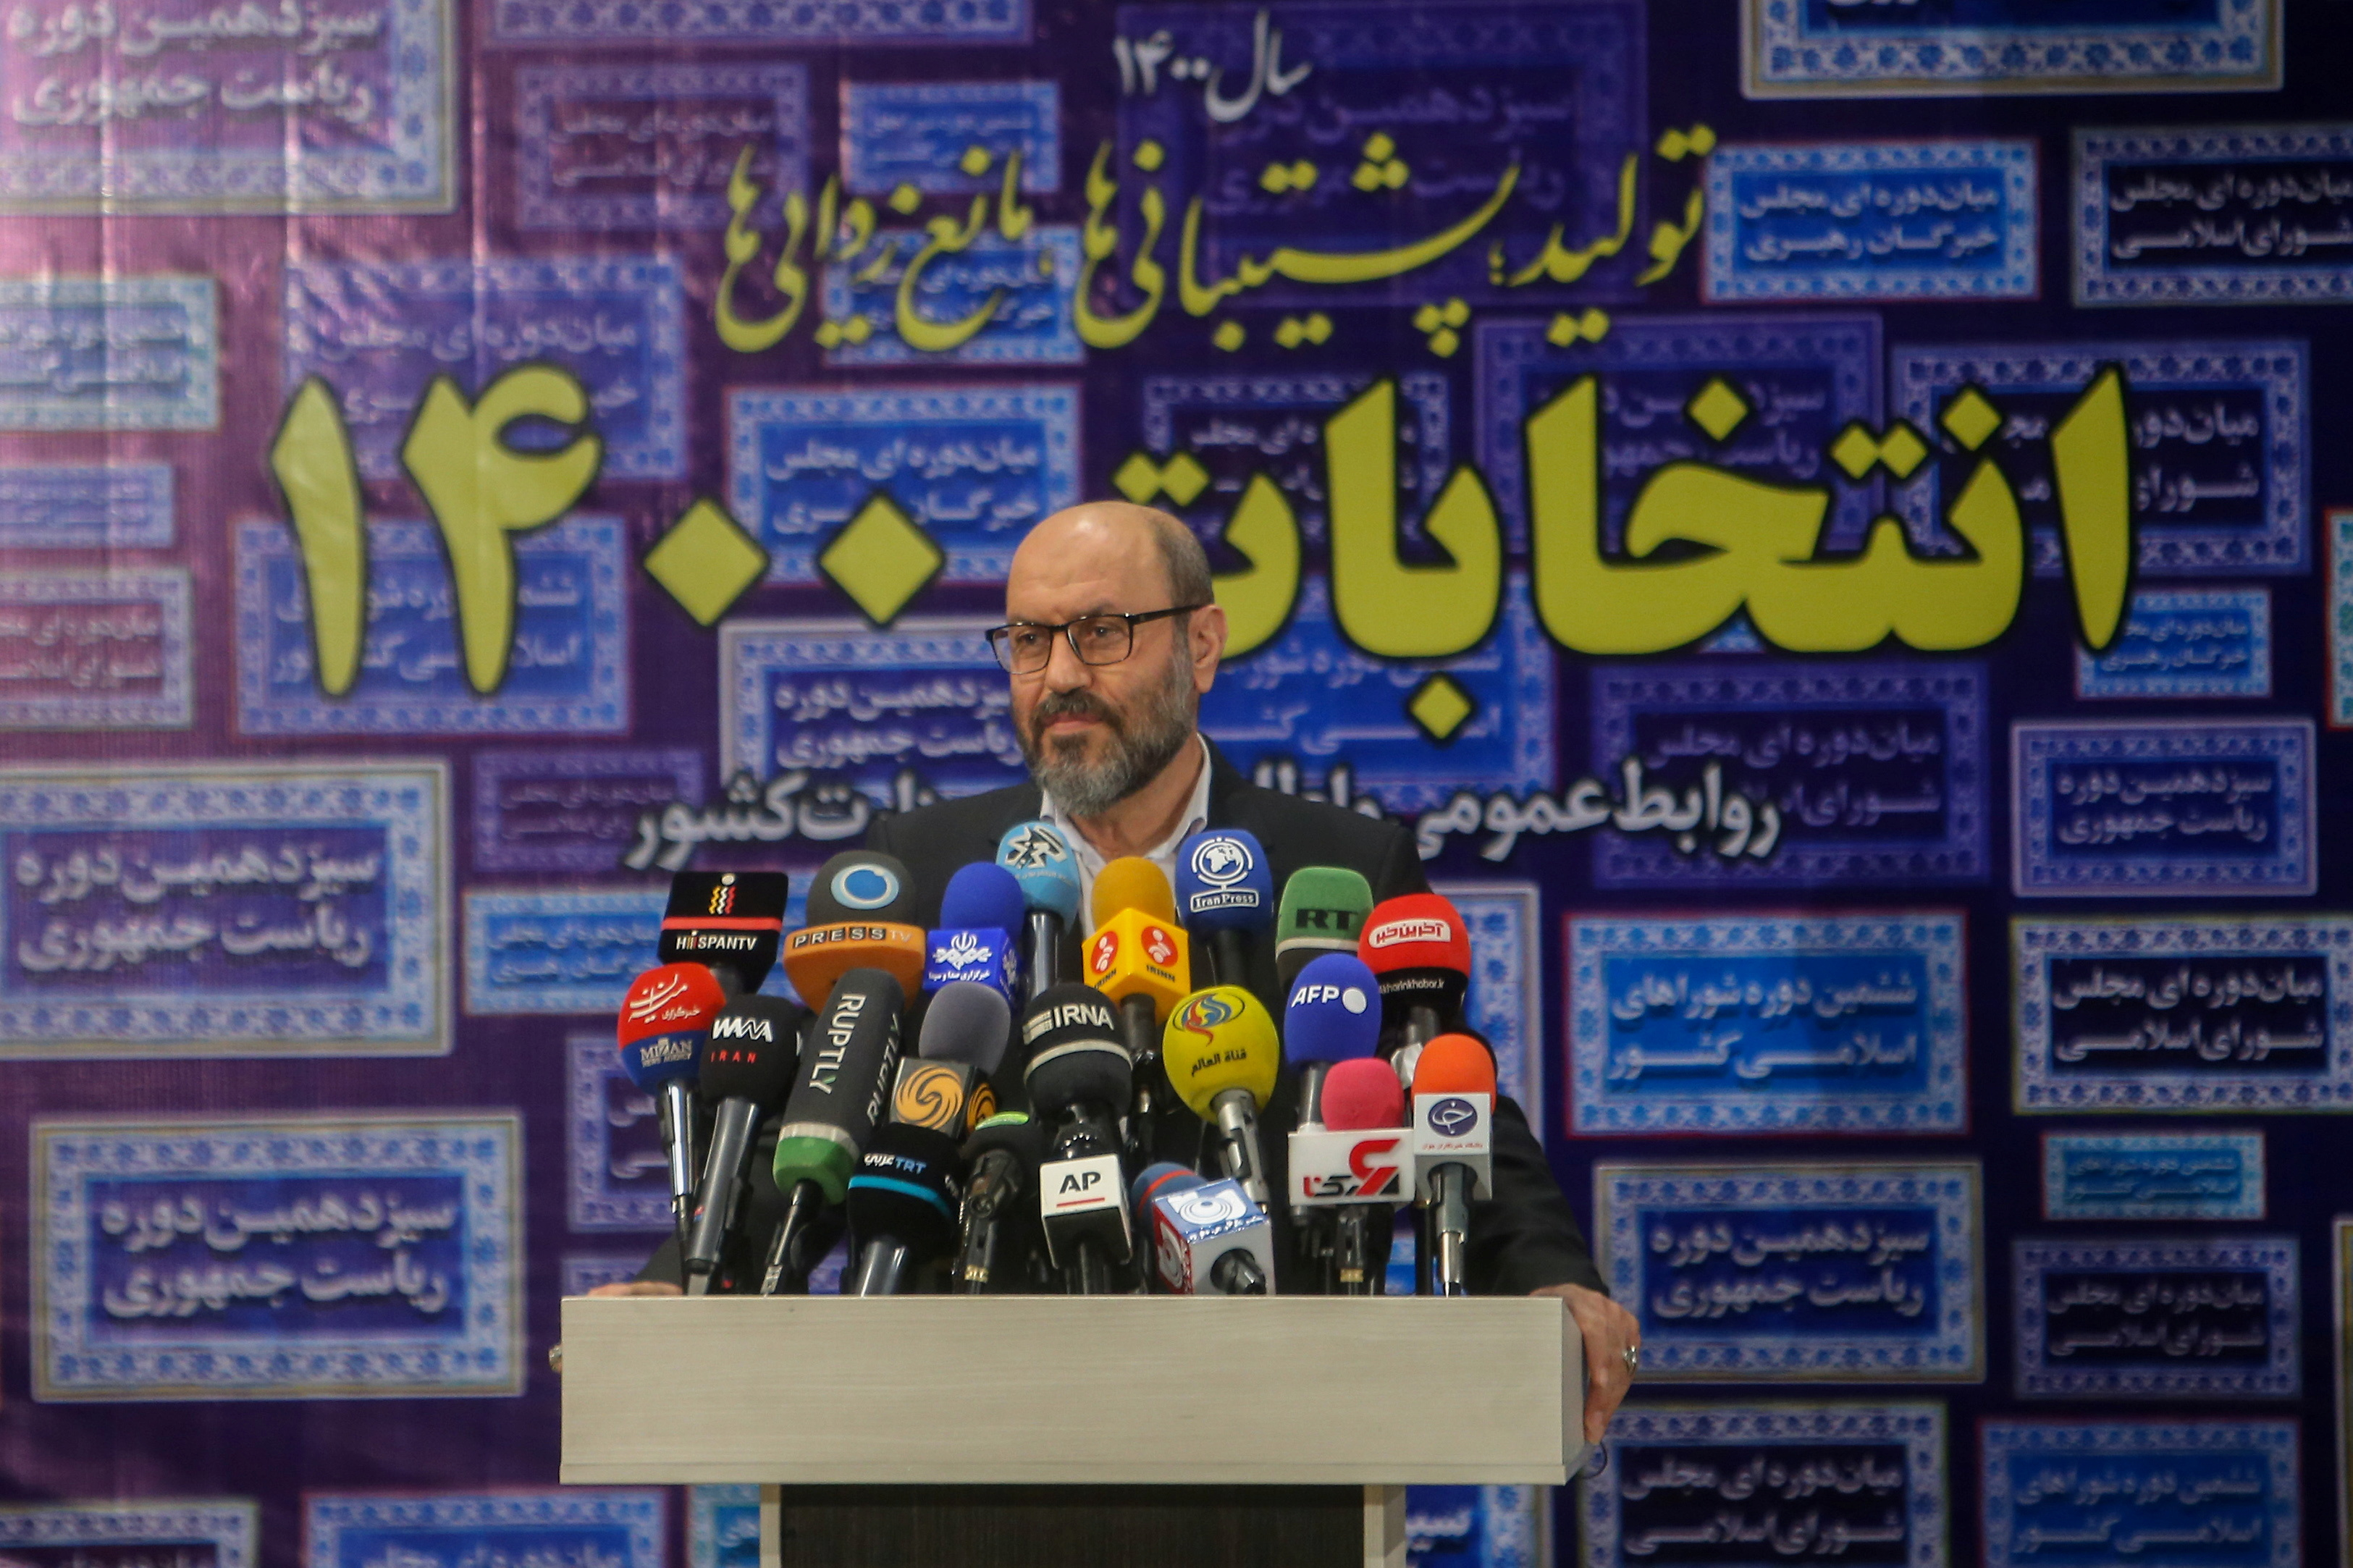 Hossein Dehghan, former Minister of Defense, speaks during a news conference after his registration as a candidate for the presidential election at the Interior Ministry, in Tehran, Iran May 11, 2021. WANA (West Asia News Agency) via REUTERS